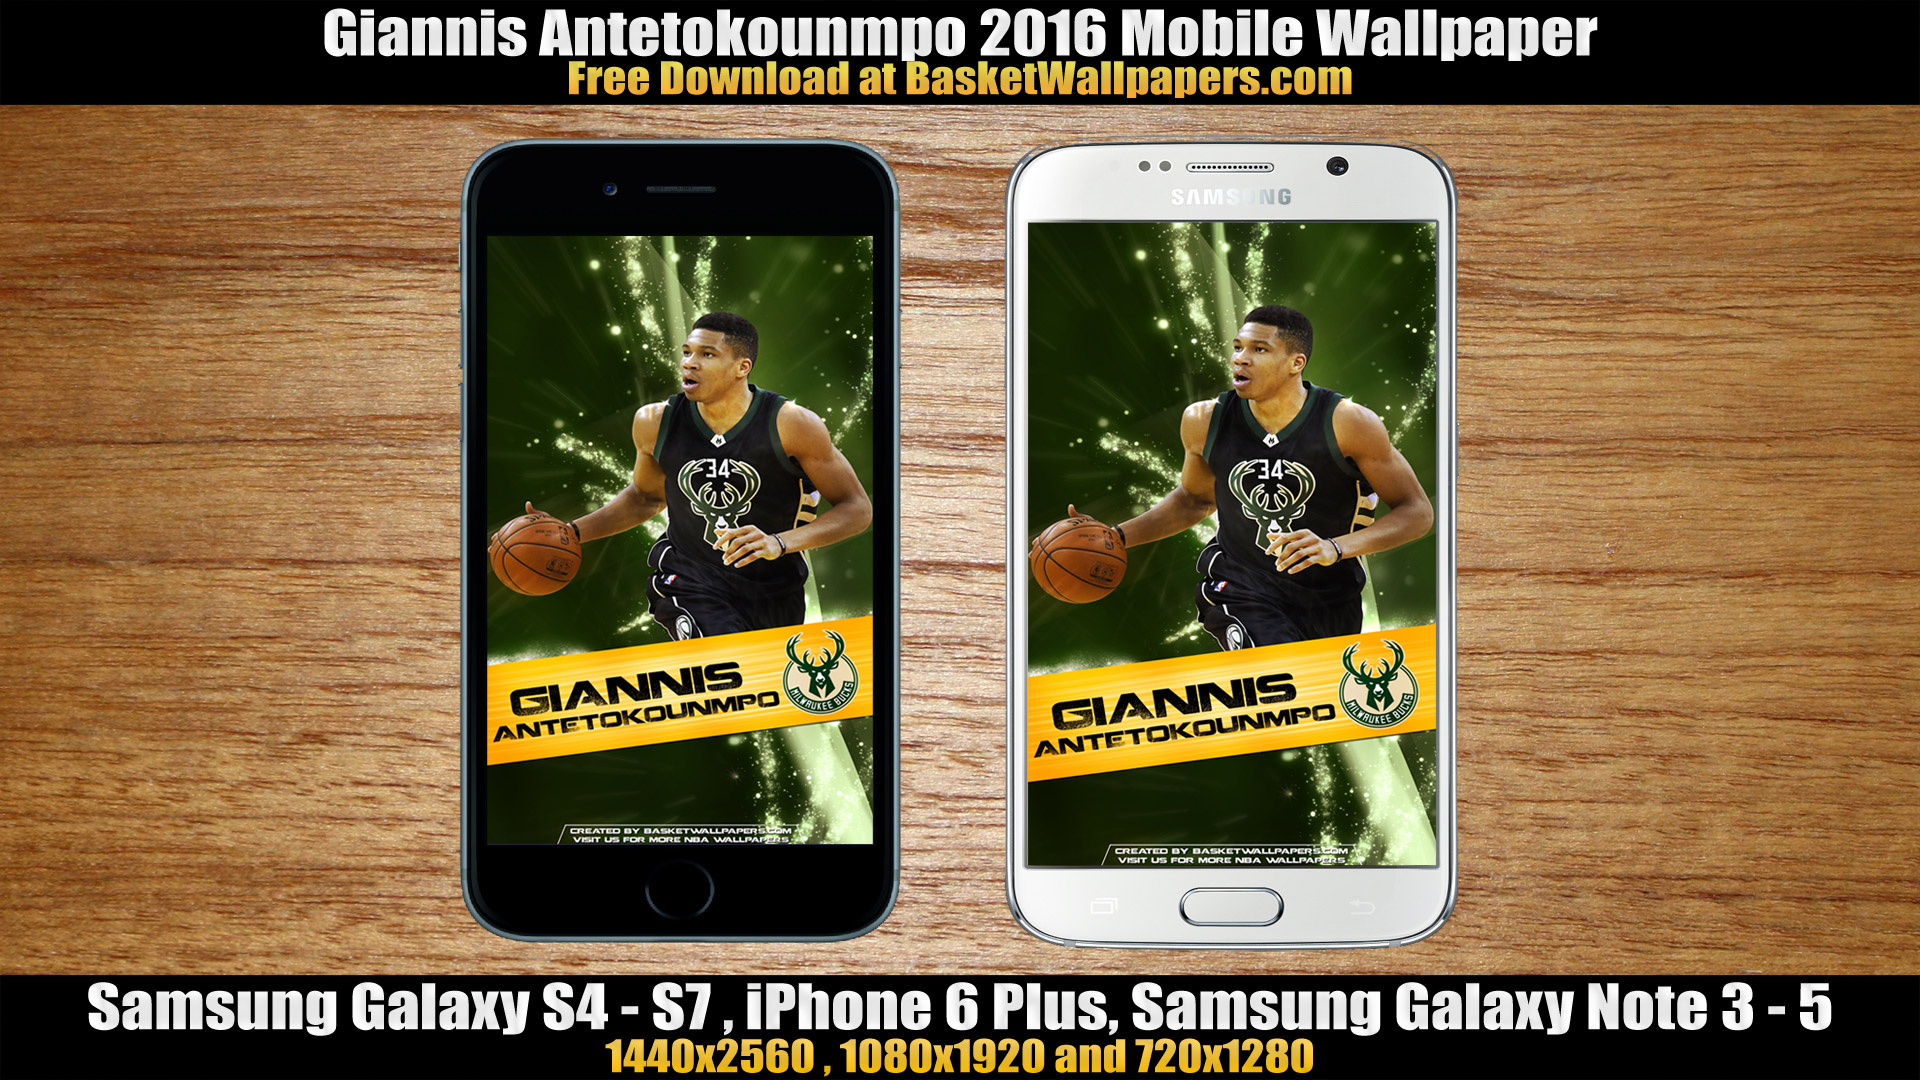 Giannis Antetokounmpo Milwaukee Bucks 2016 Mobile Wallpaper